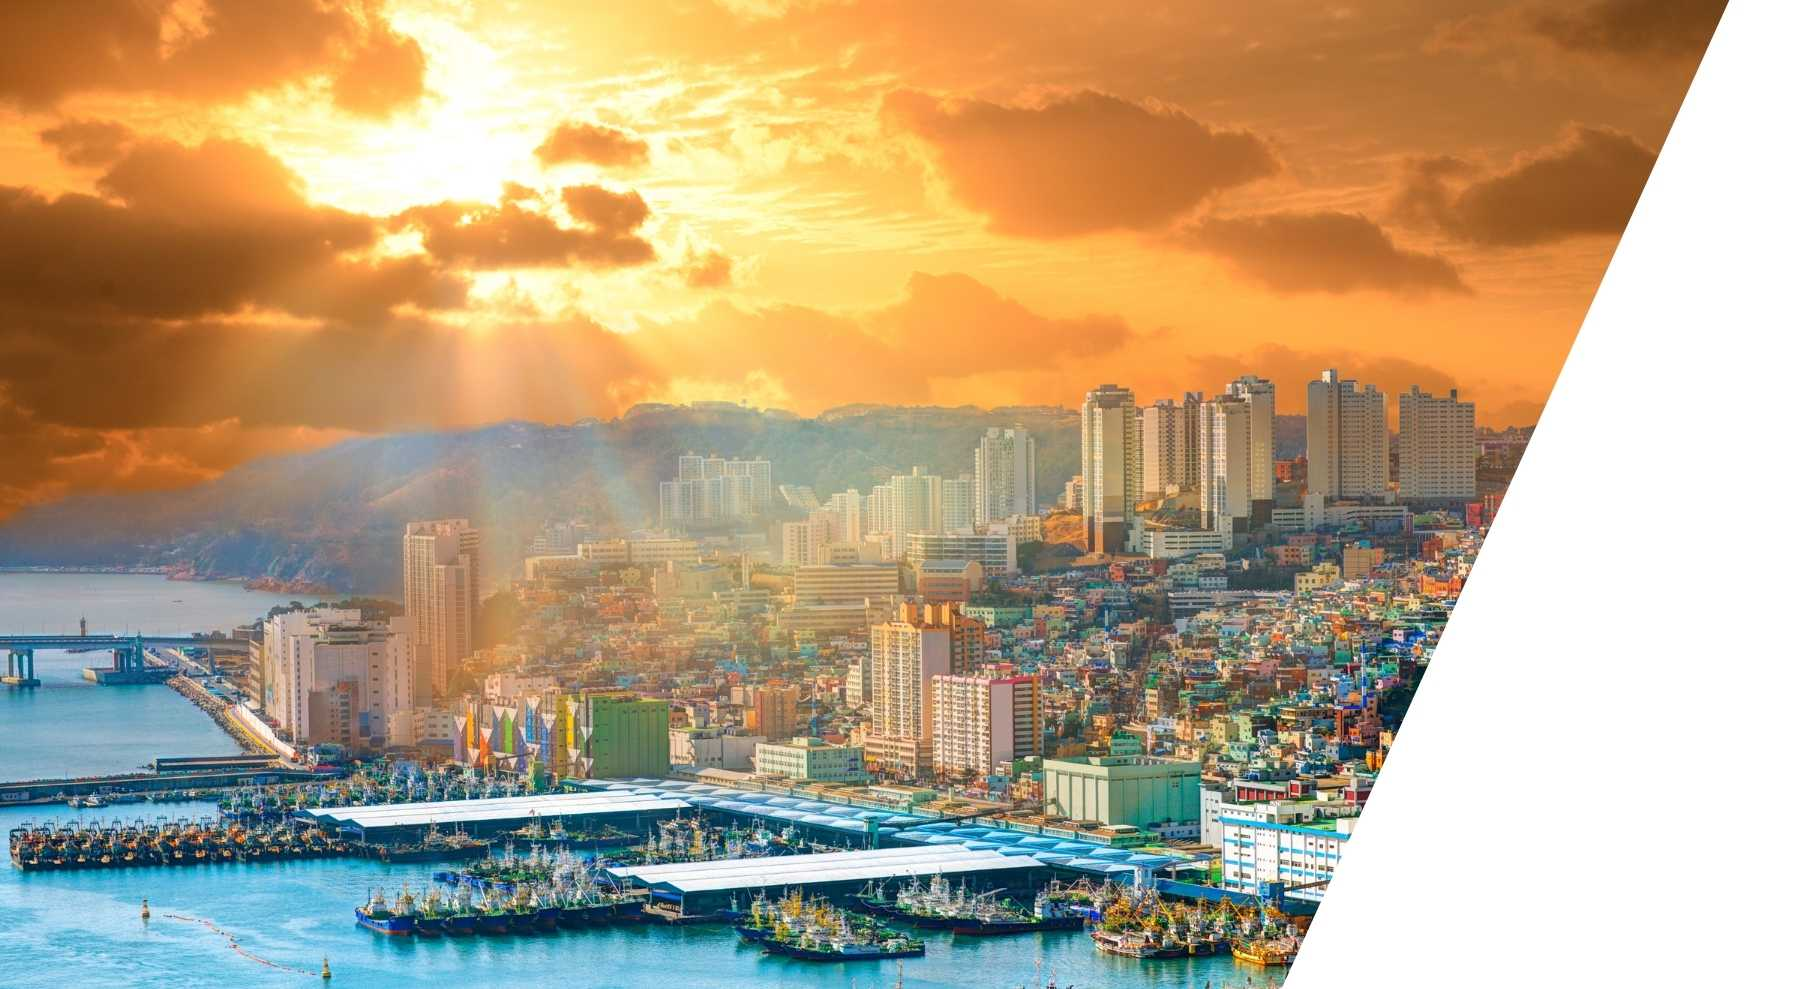 Sunset View over the City Busan